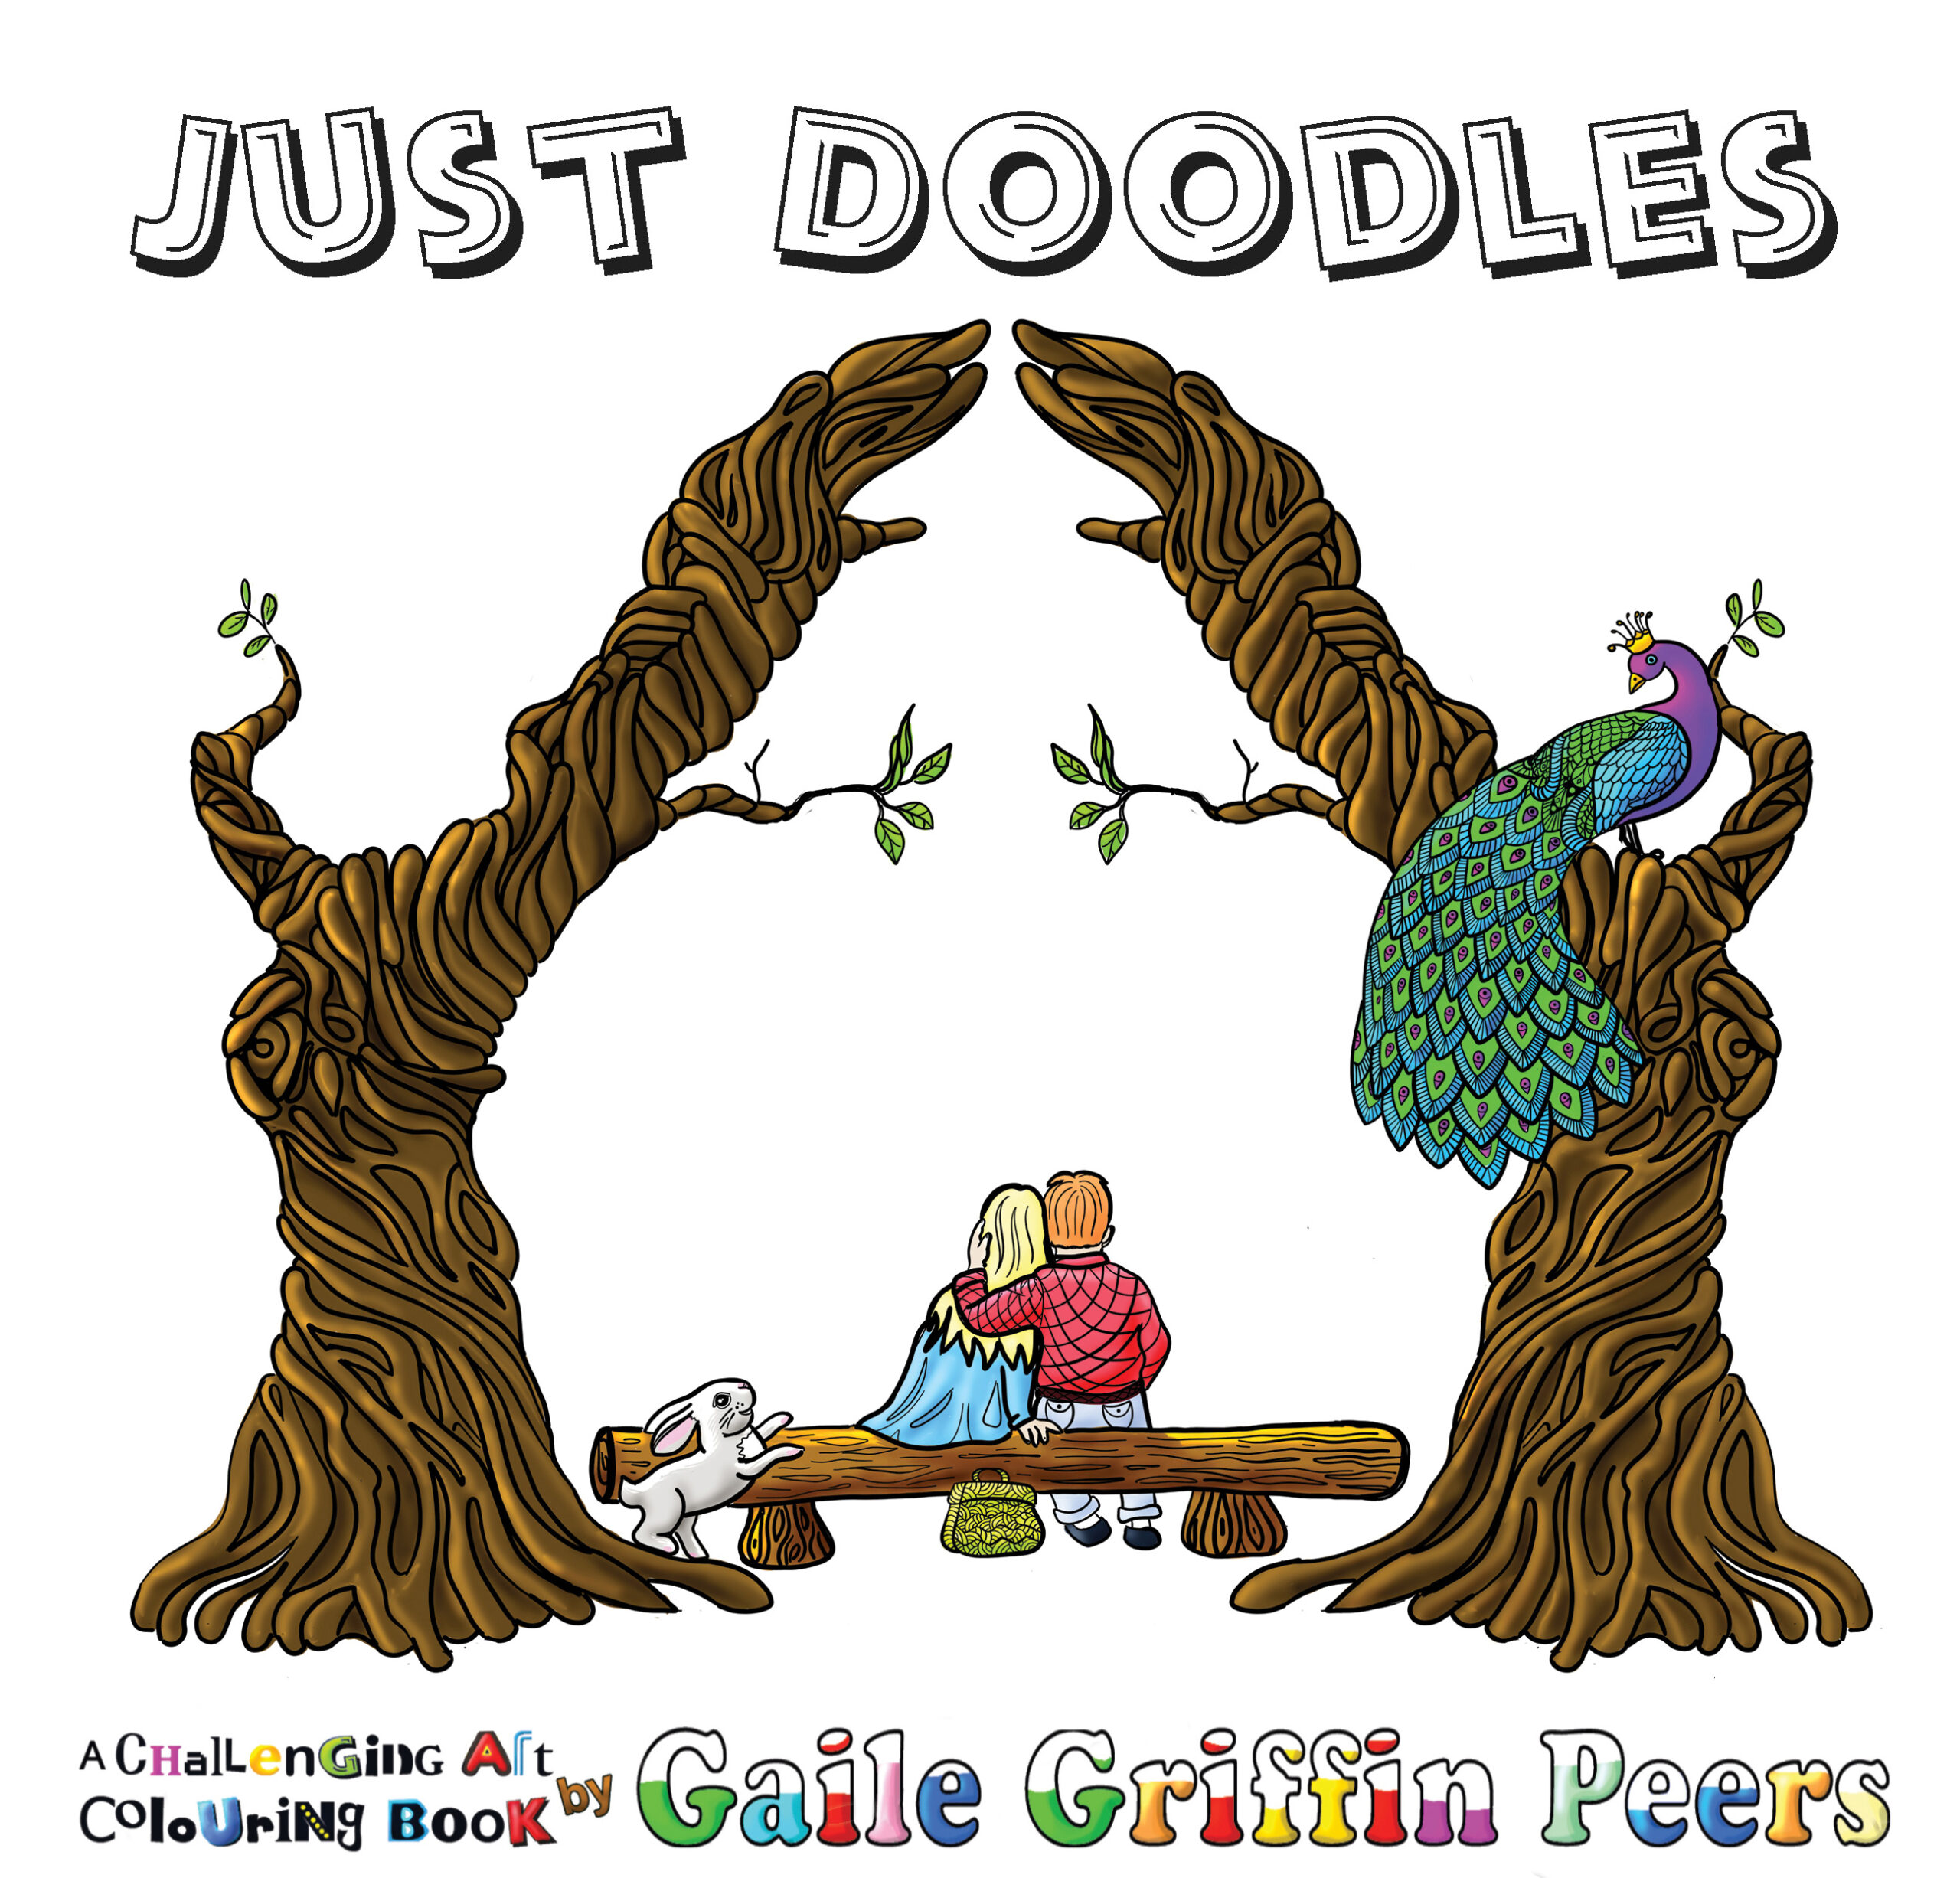 Just Doodles is now on Amazon